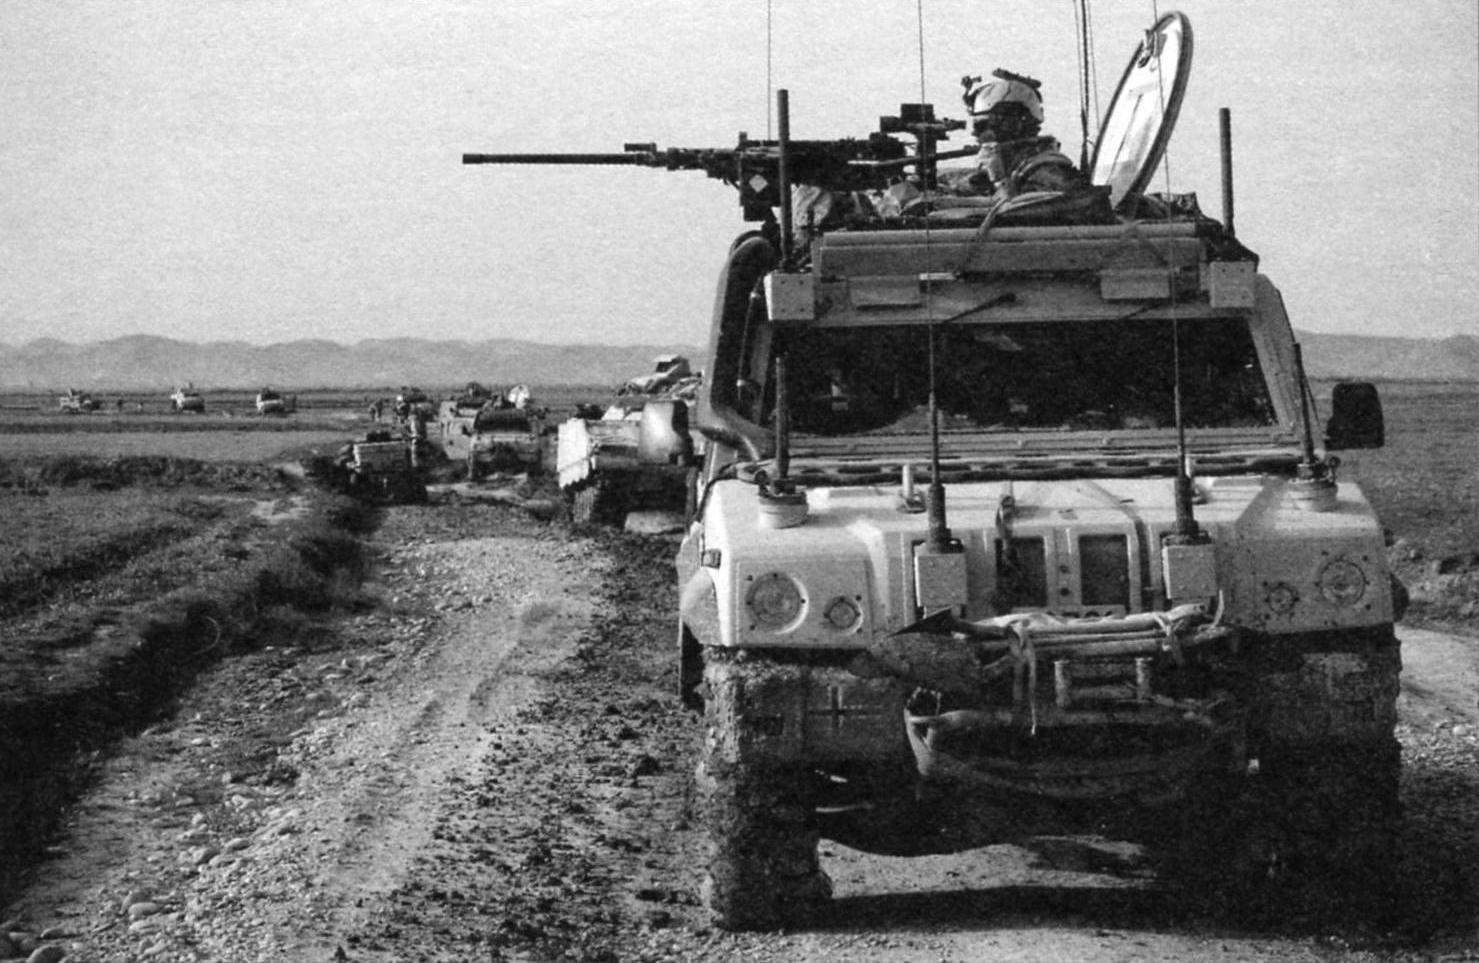 A column of armored vehicles